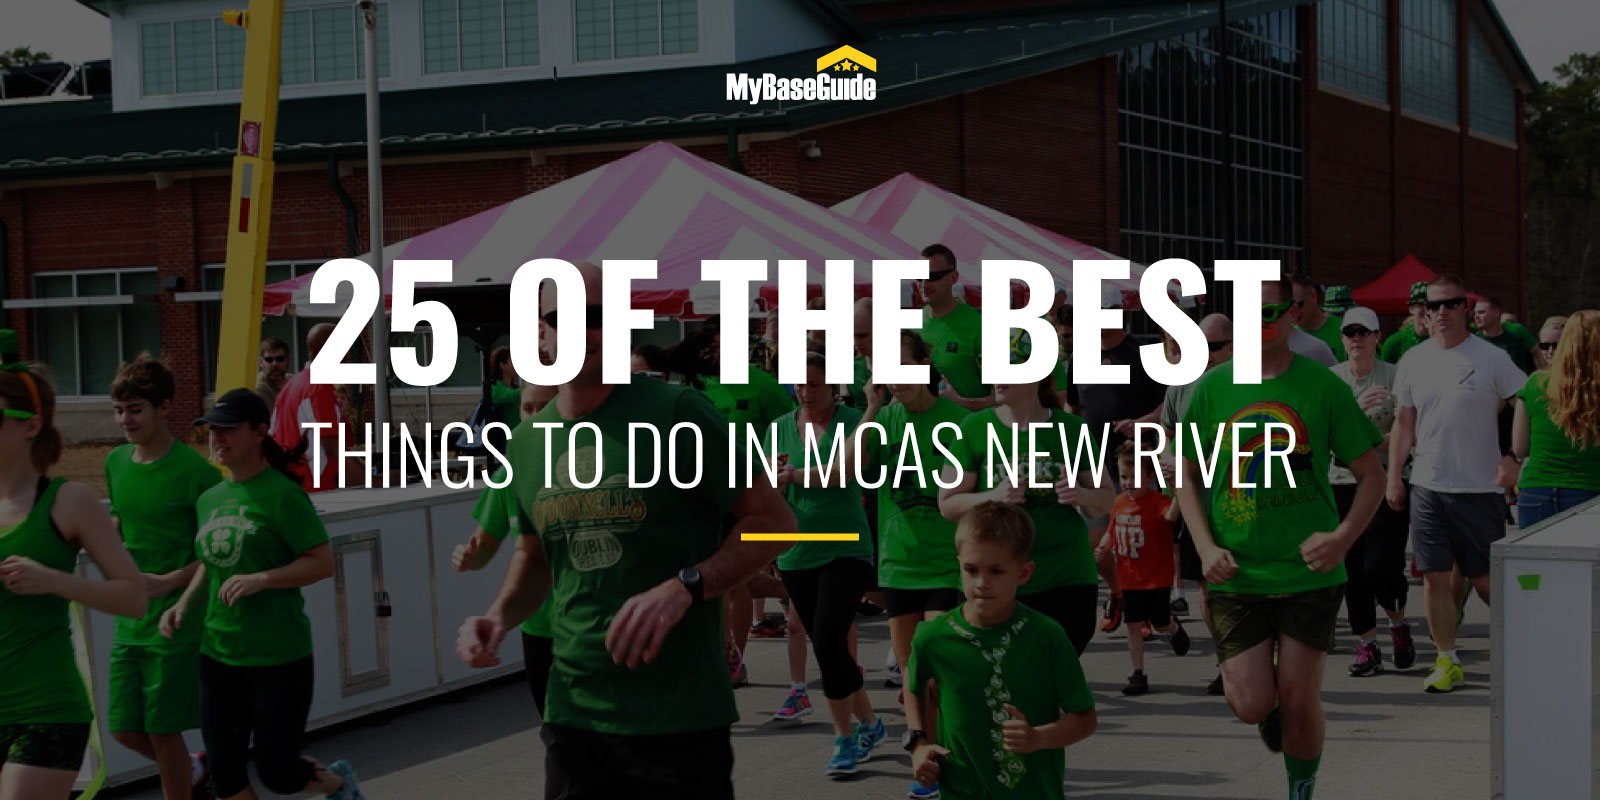 25 of the Best Things to Do in MCAS New River